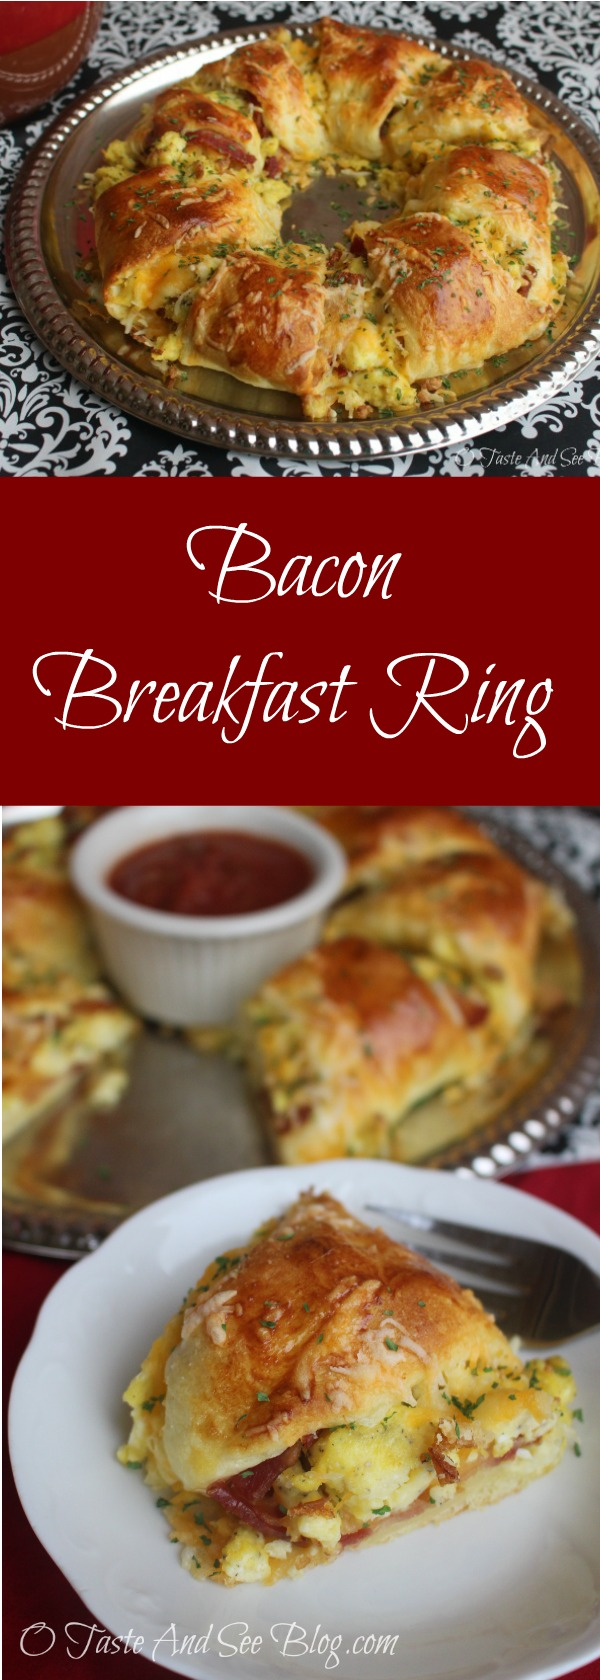 Bacon Breakfast Ring #ad #MadeWithLove #HEB